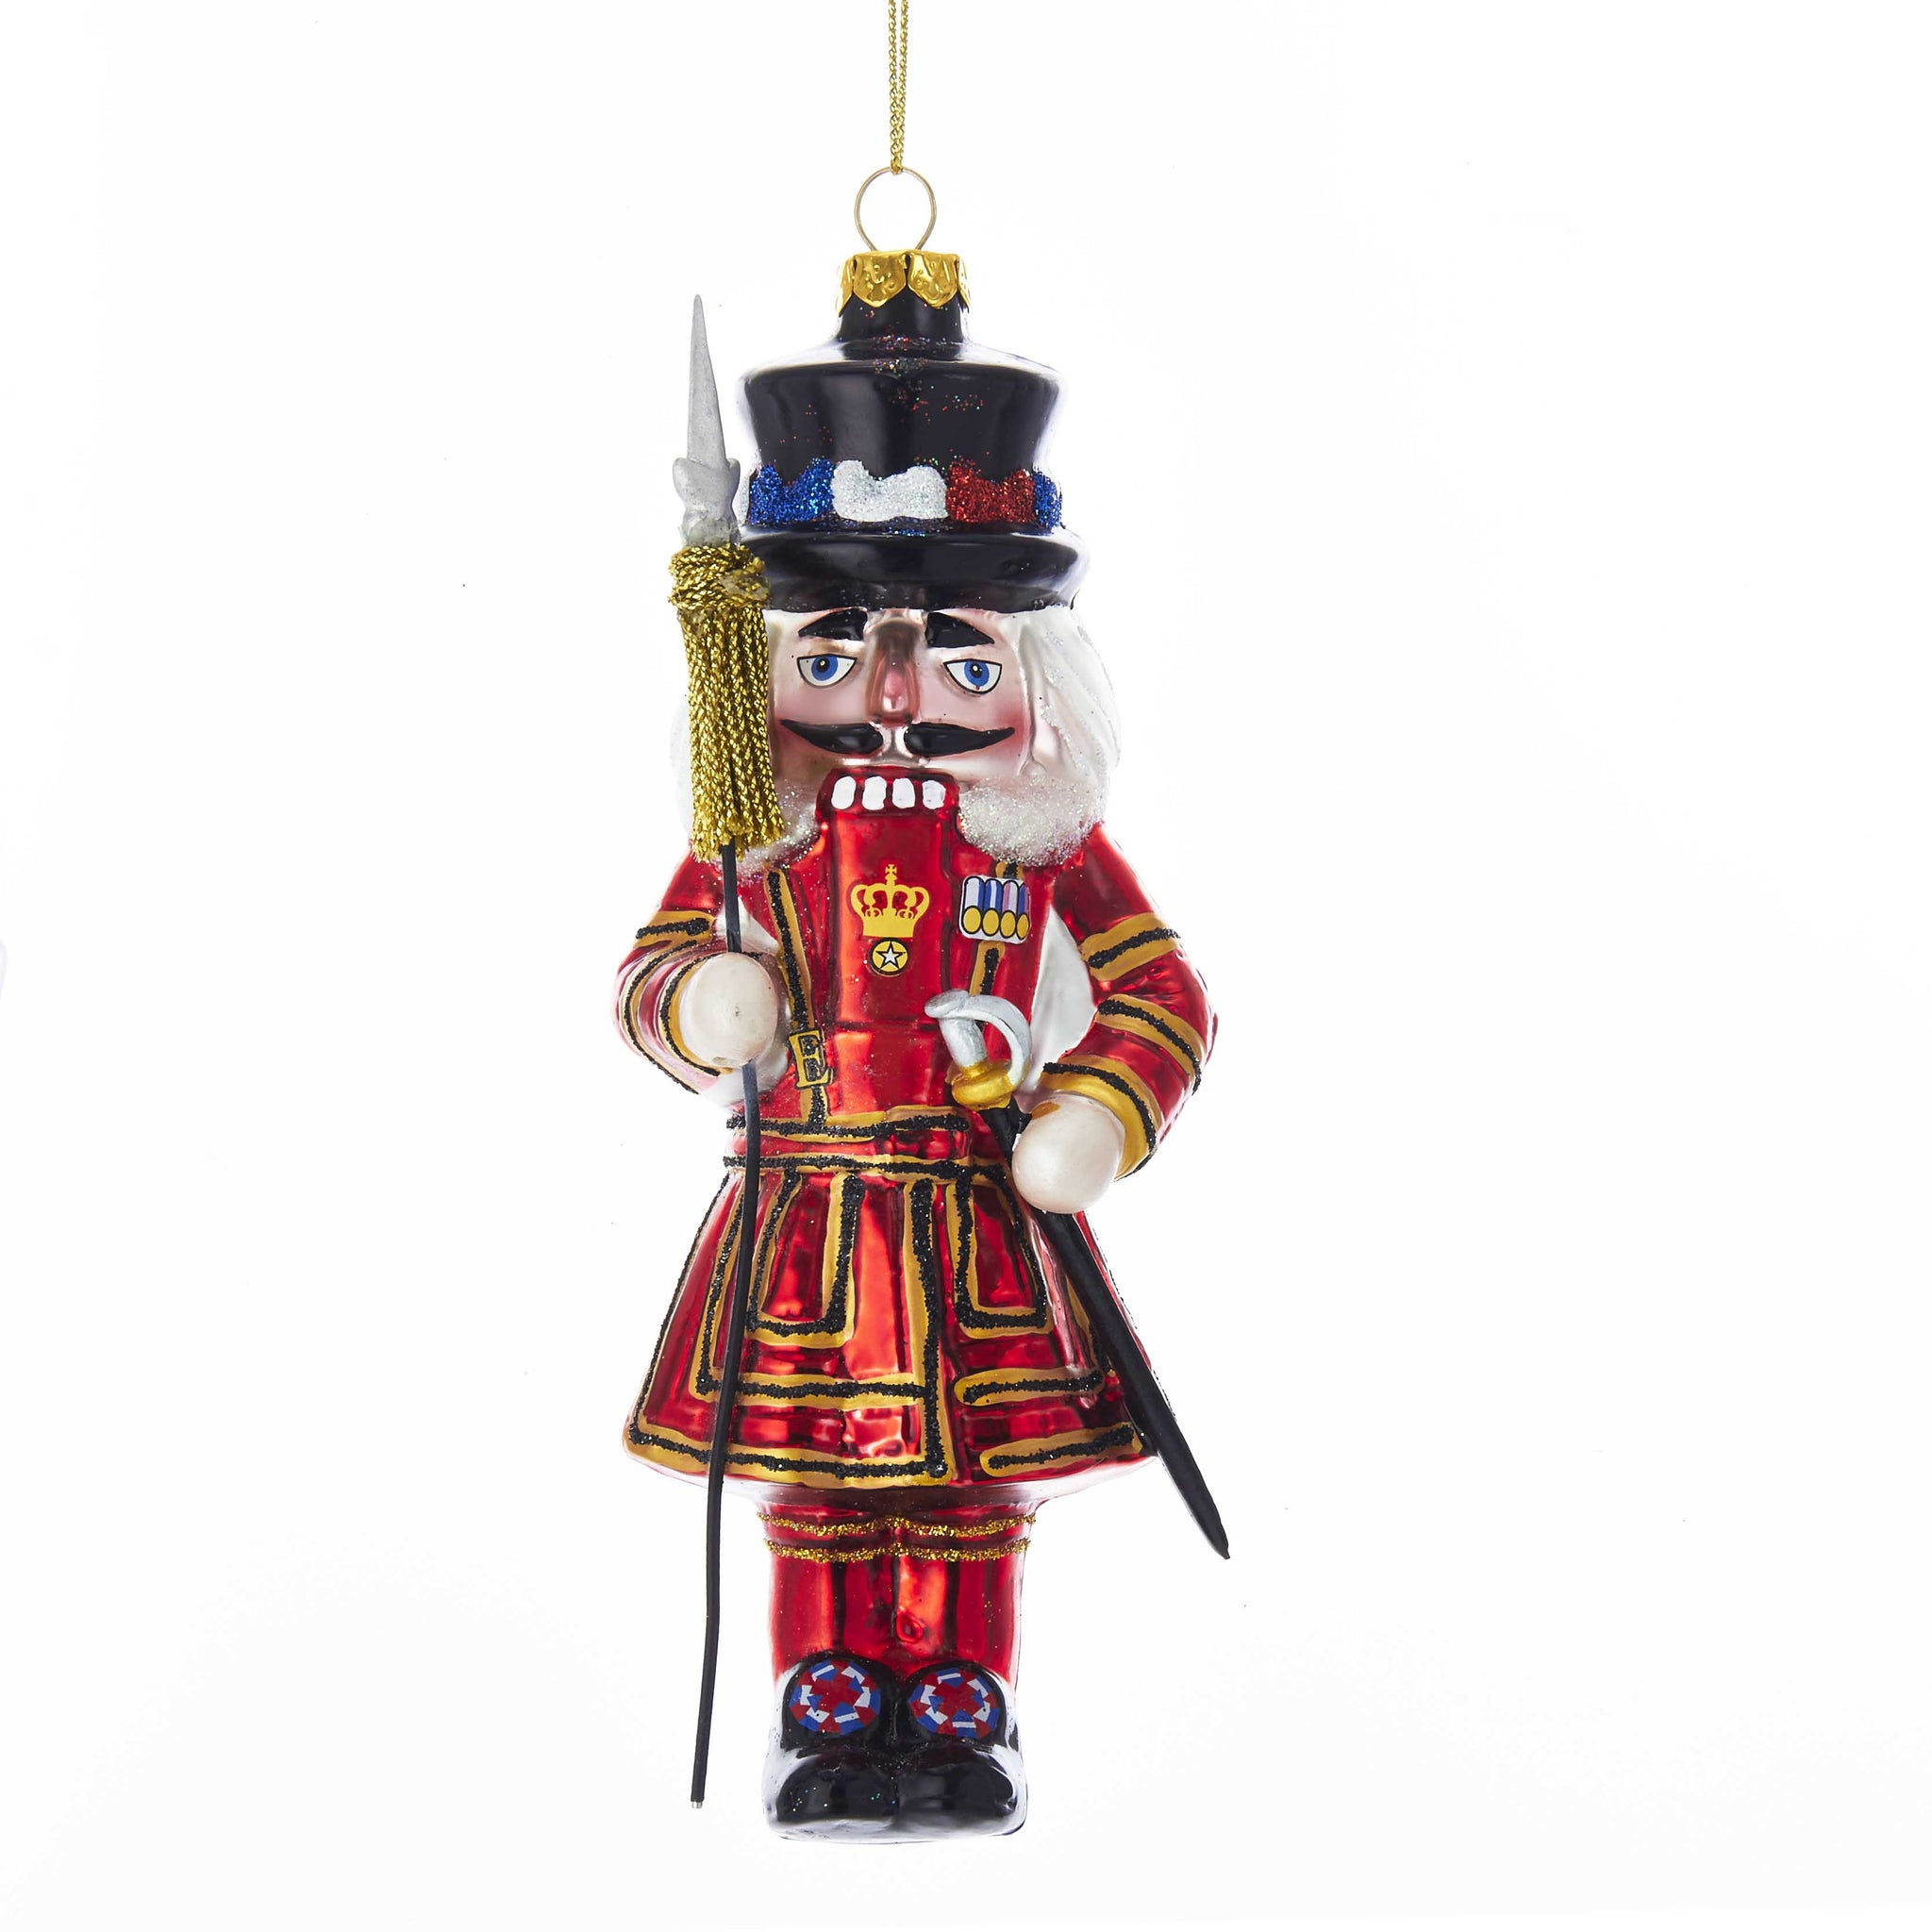 Glass England Beefeater Nutcracker Ornament